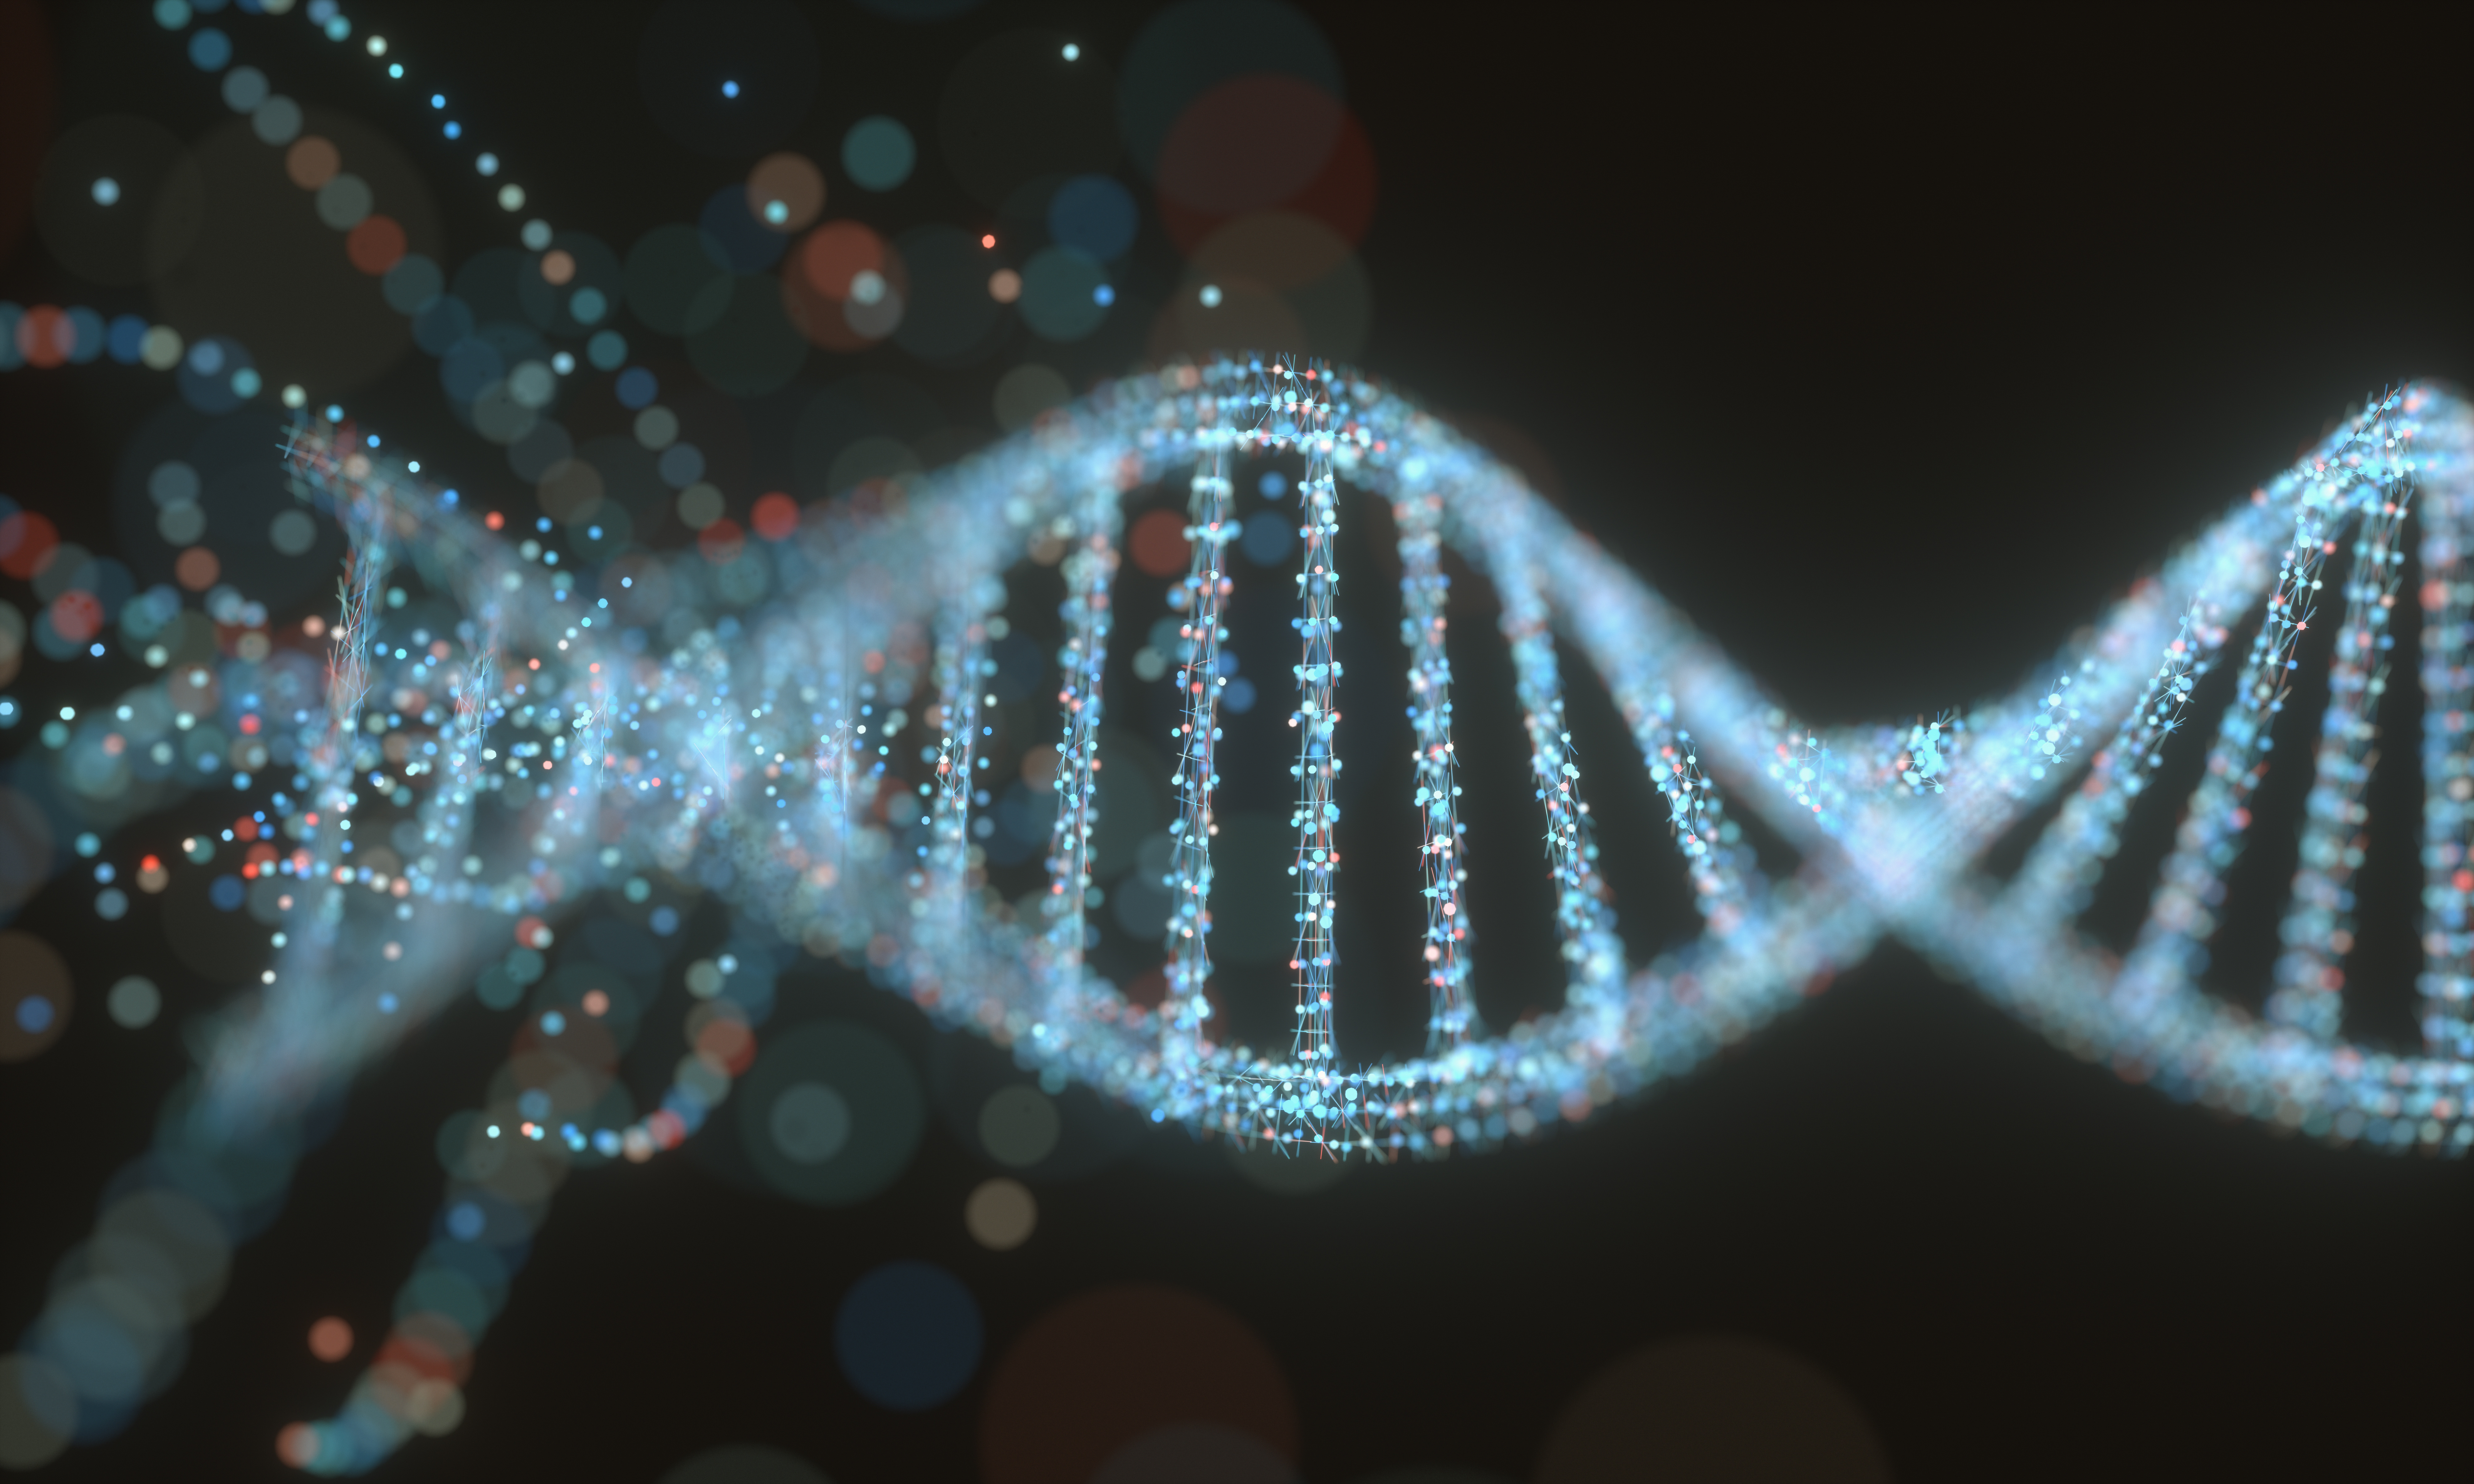 Nebula Genomics, with free DNA sequencing, opens for